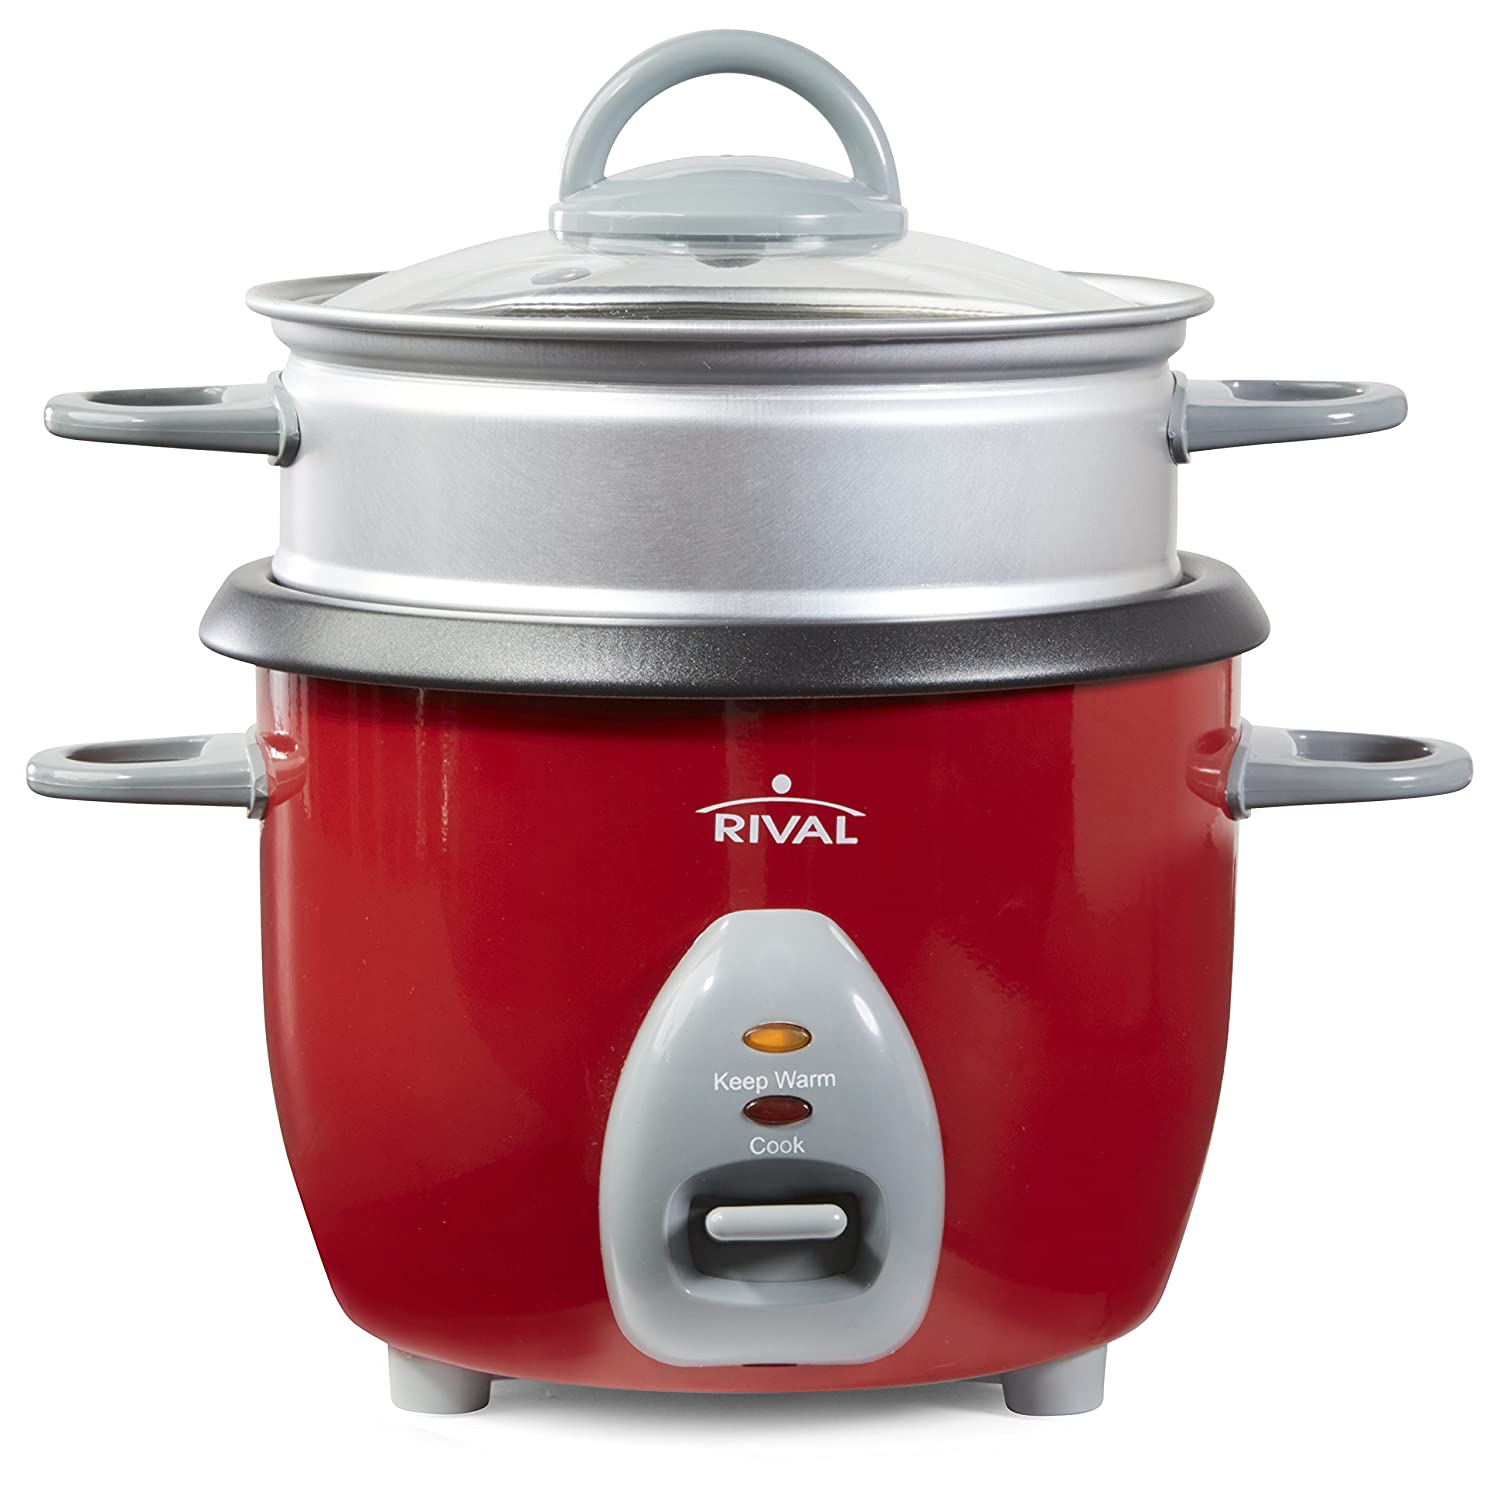 Amazon Rival 6 Cup Rice Cooker With Steamer Basket Red Rc61